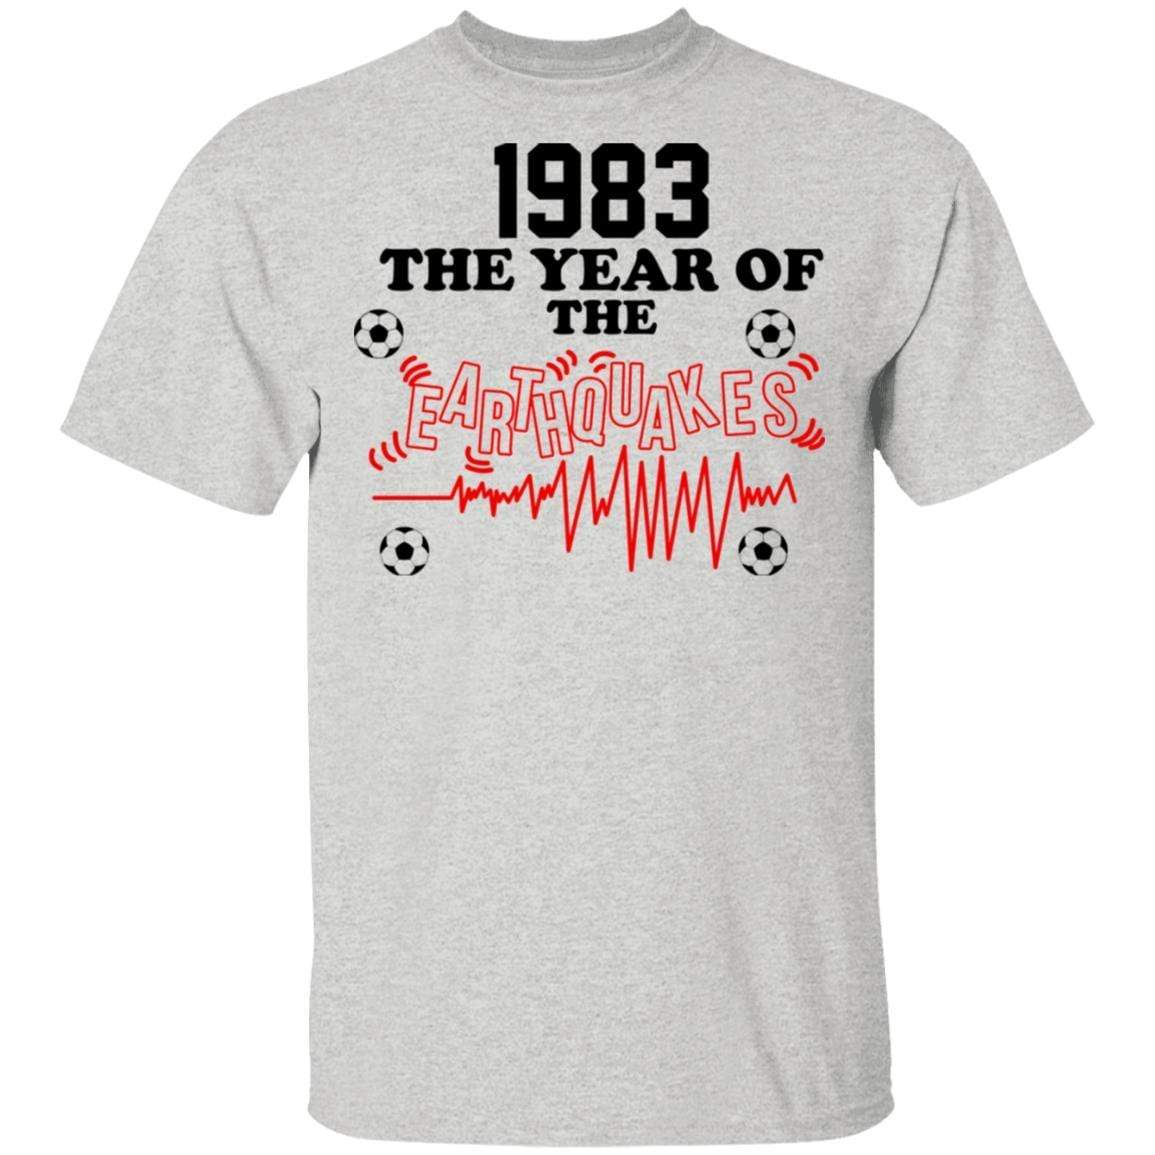 1983 The Year Of The Earthquakes San Jose Earthquakes T-Shirts, Hoodies 1049-9952-86355409-48184 - Tee Ript